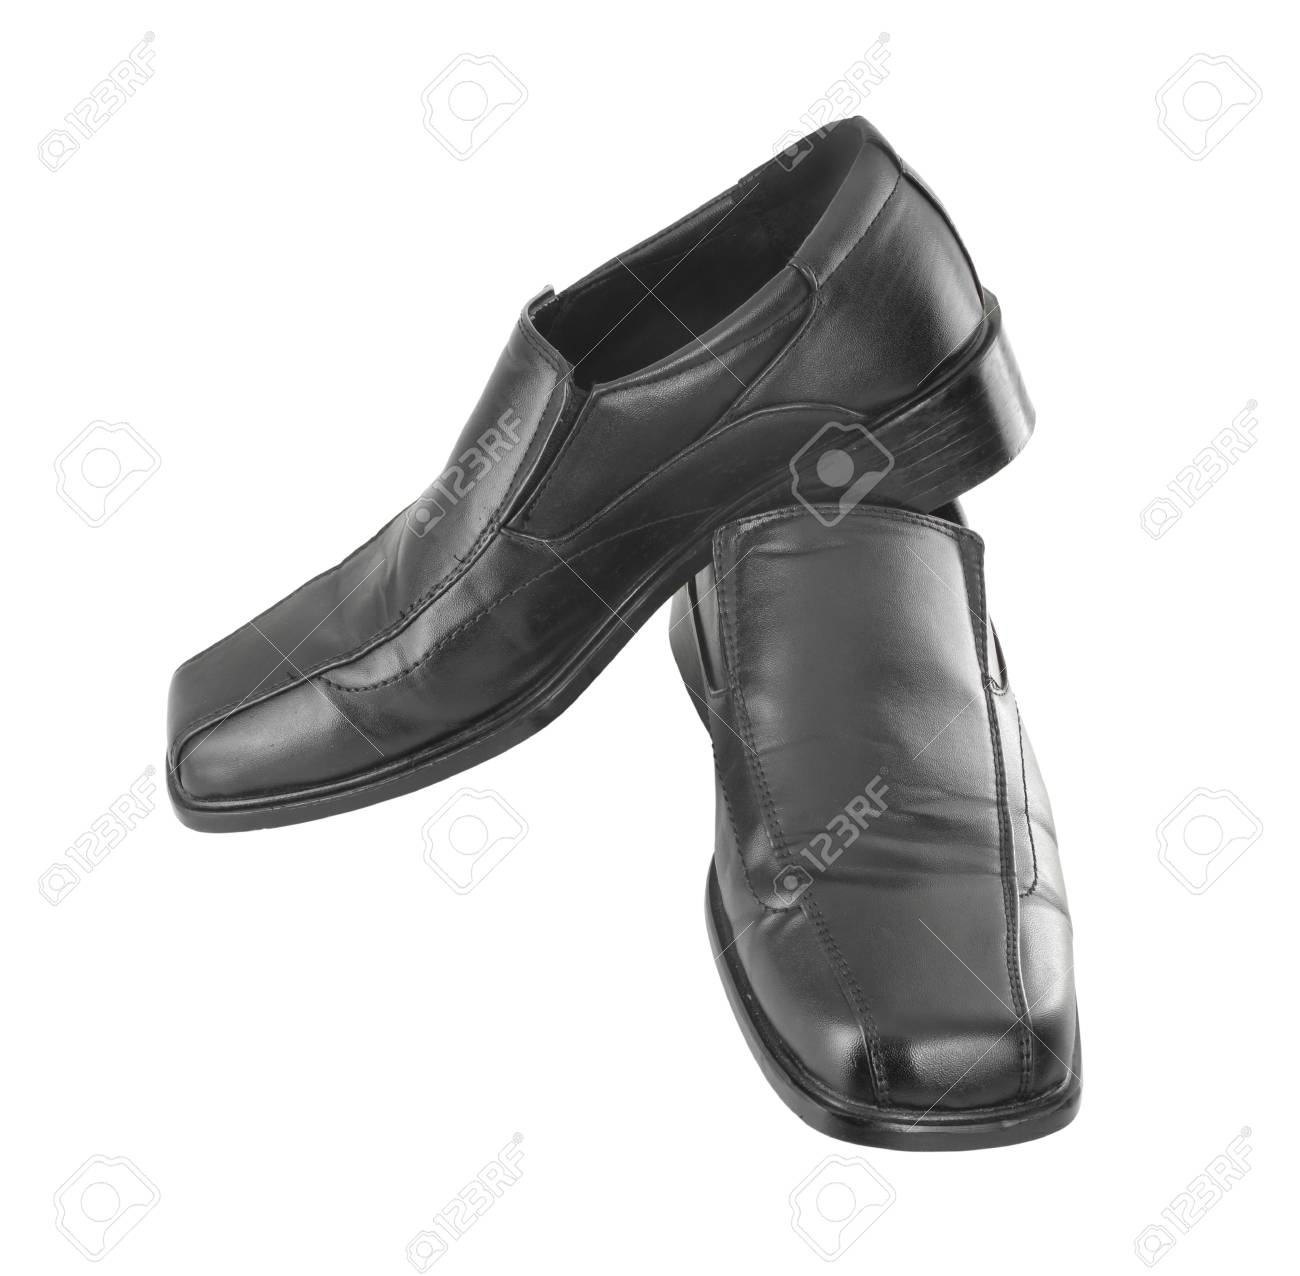 Men's black shoes on a white background Stock Photo - 18590439